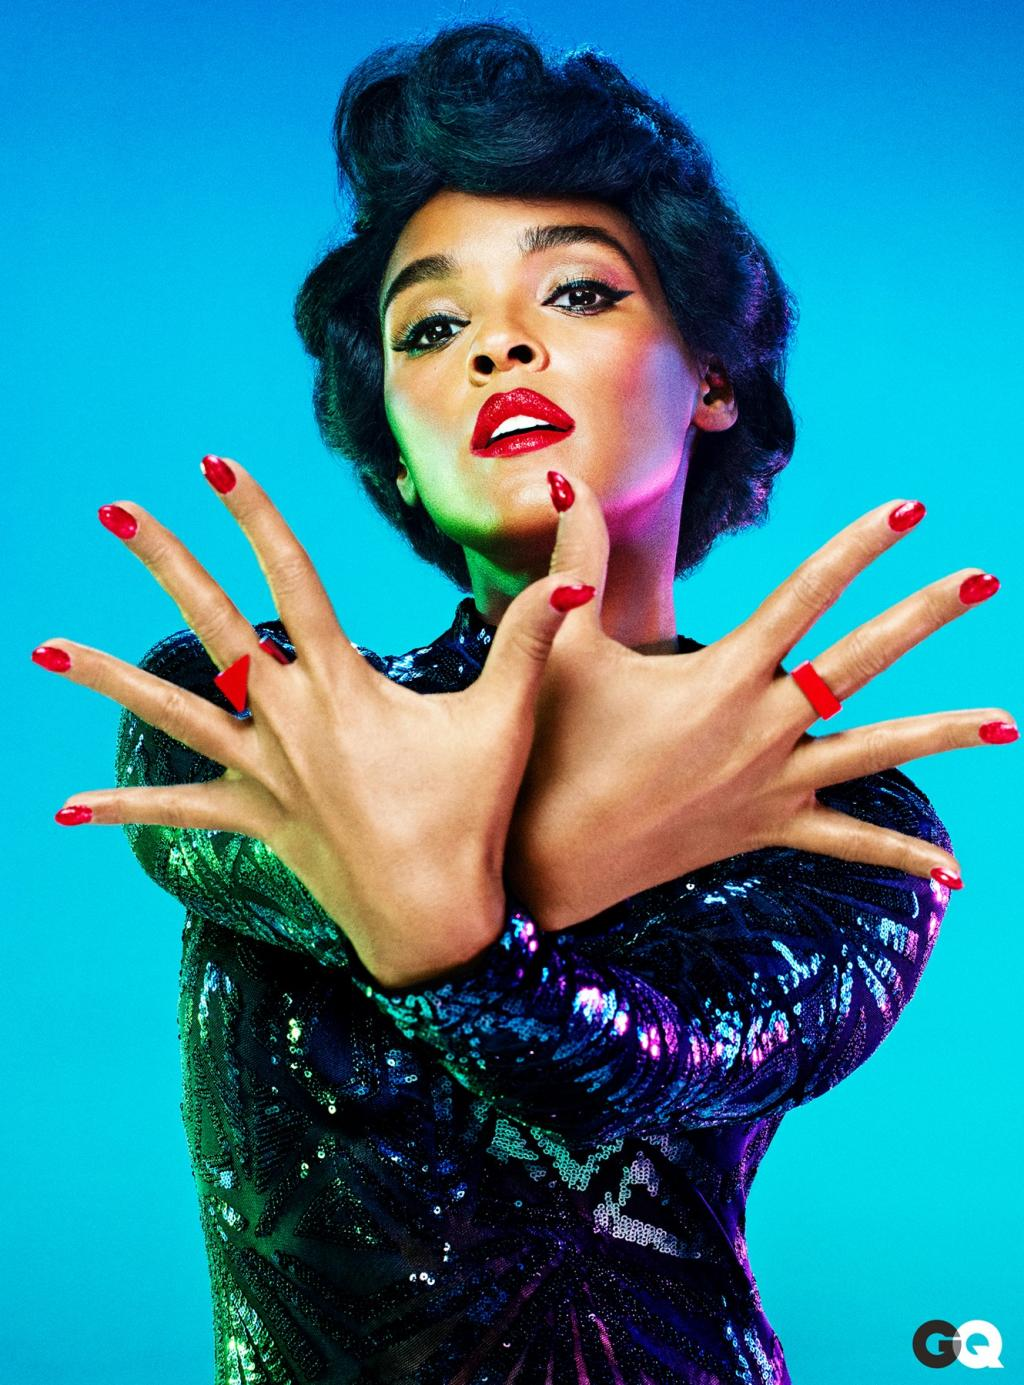 Hidden Figures Star Janelle Monae Says She Wants to        See More Black People      '  in Hollywood Films